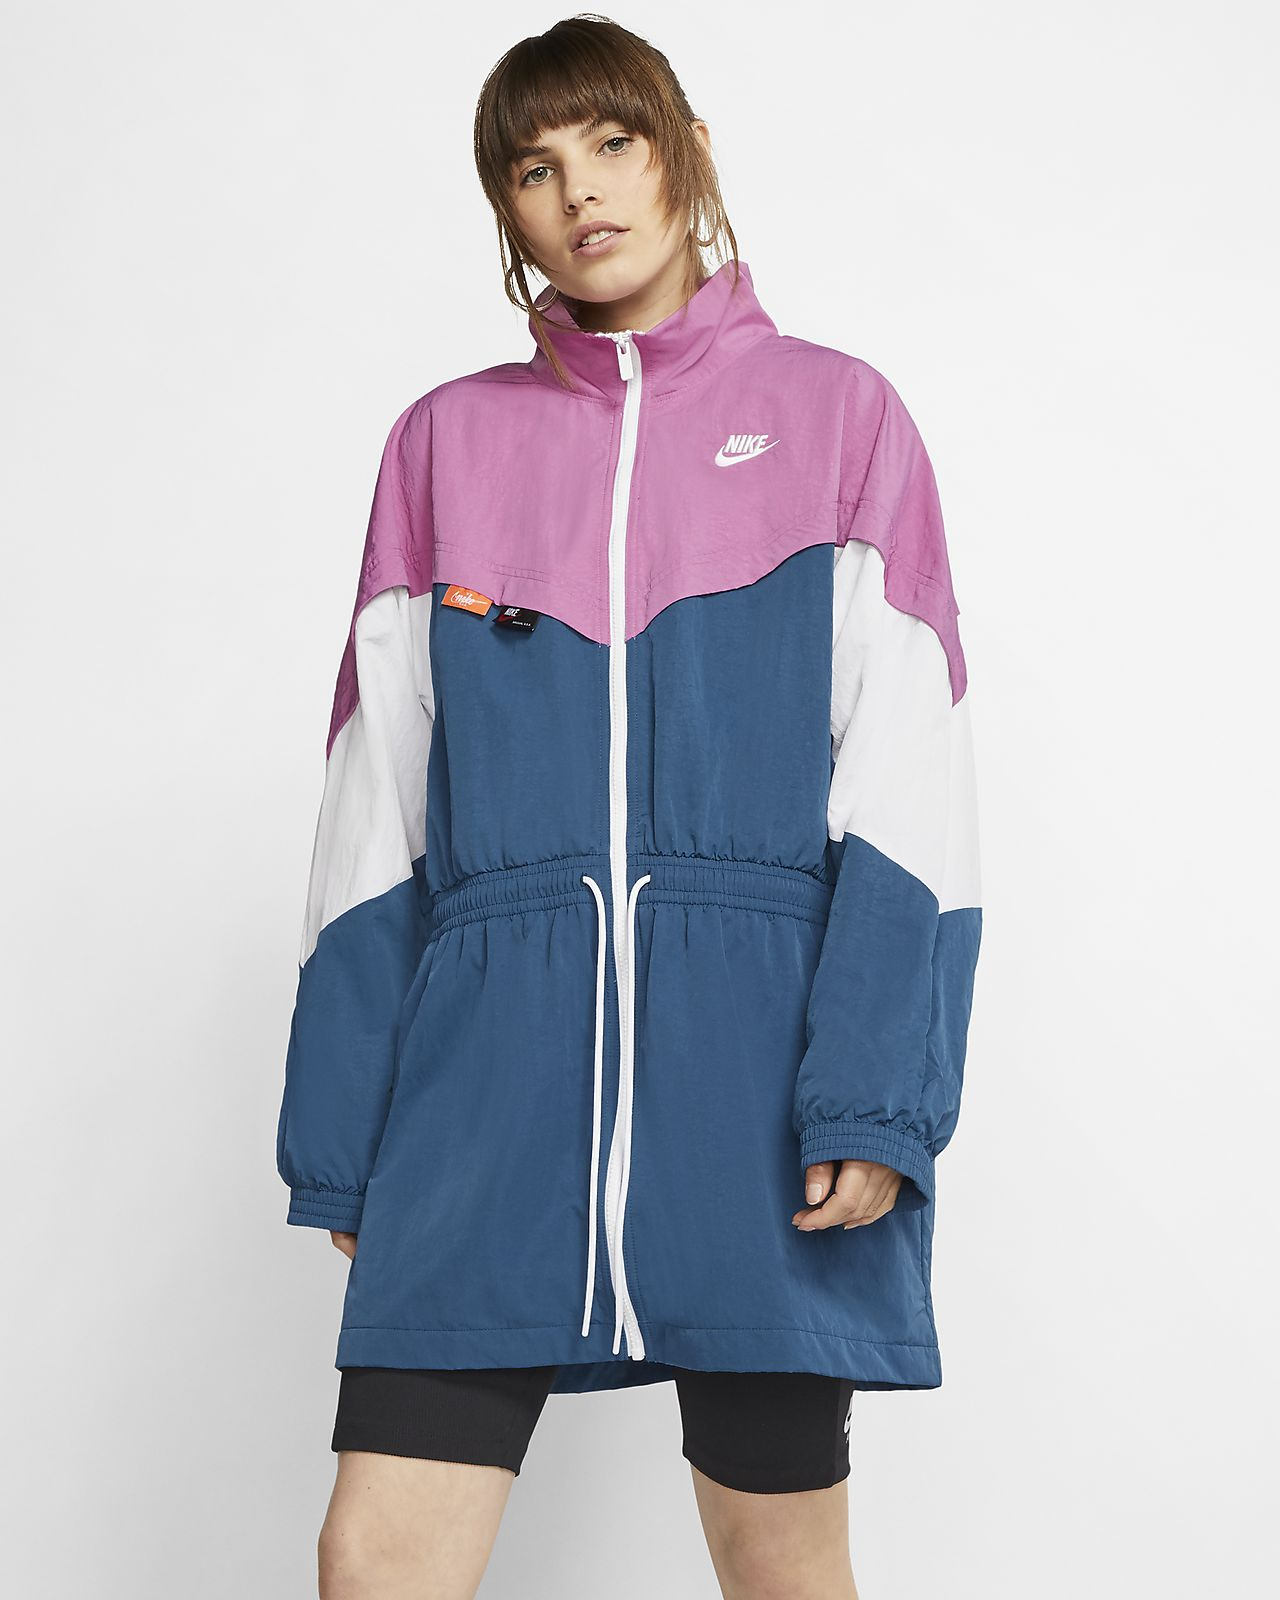 Nike Sportswear Icon Clash Women's Woven Track Jacket